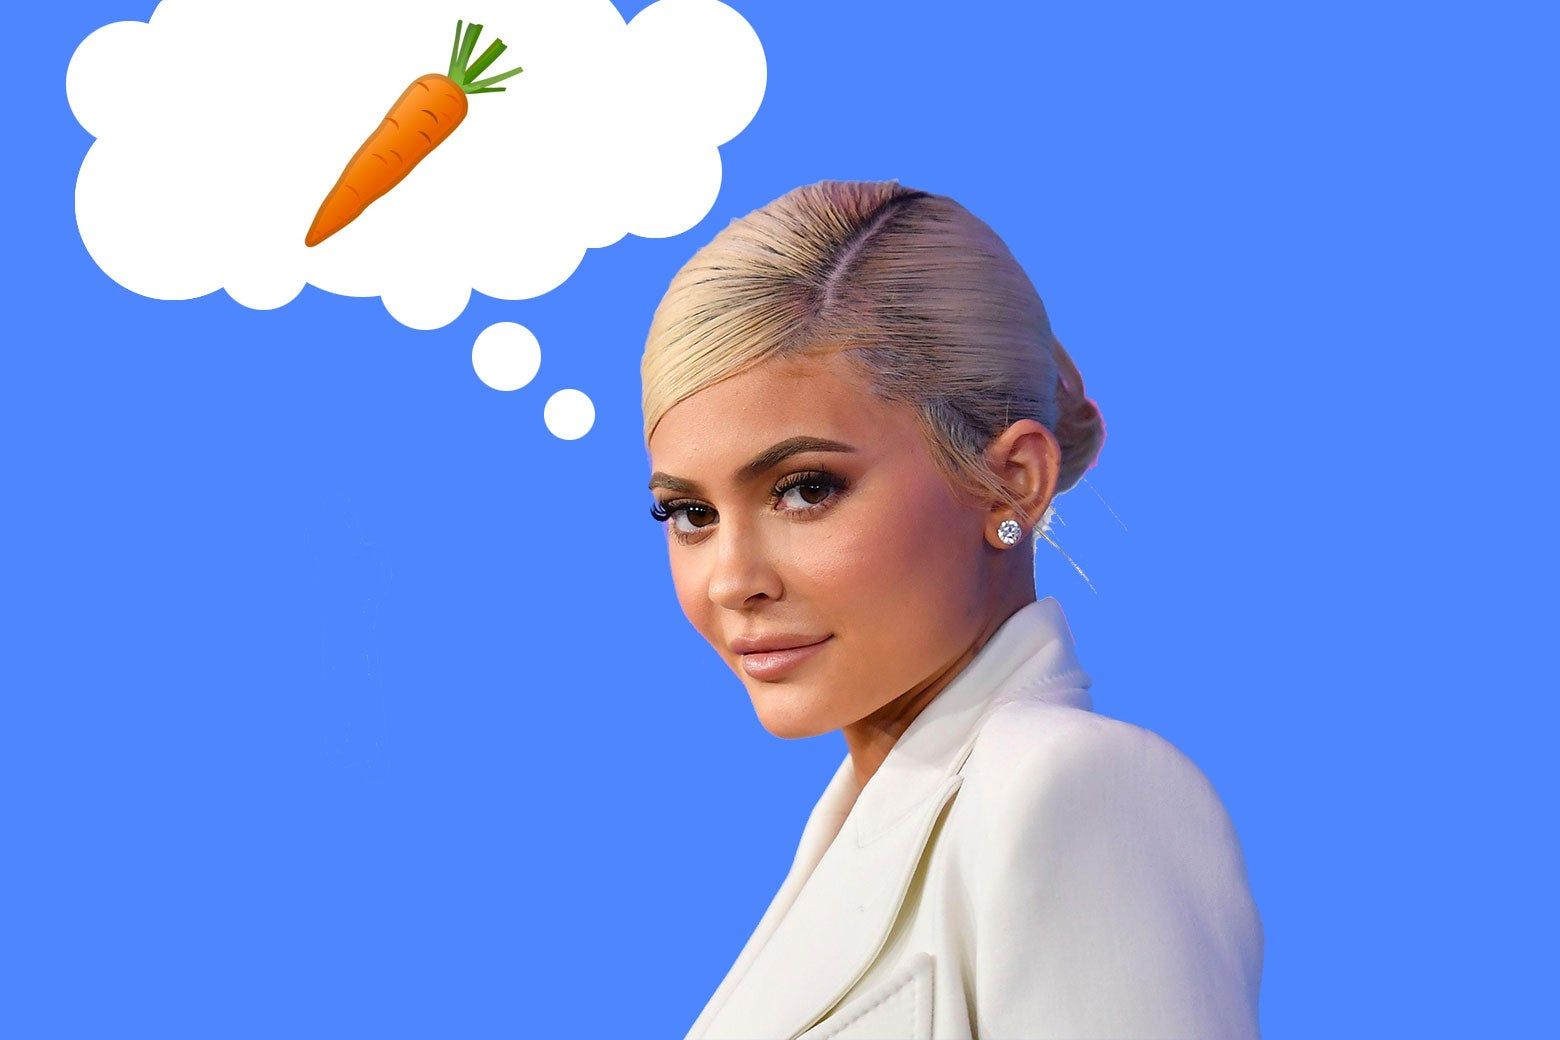 Kylie Jenner in front of a blue background thinking of a single carrot.